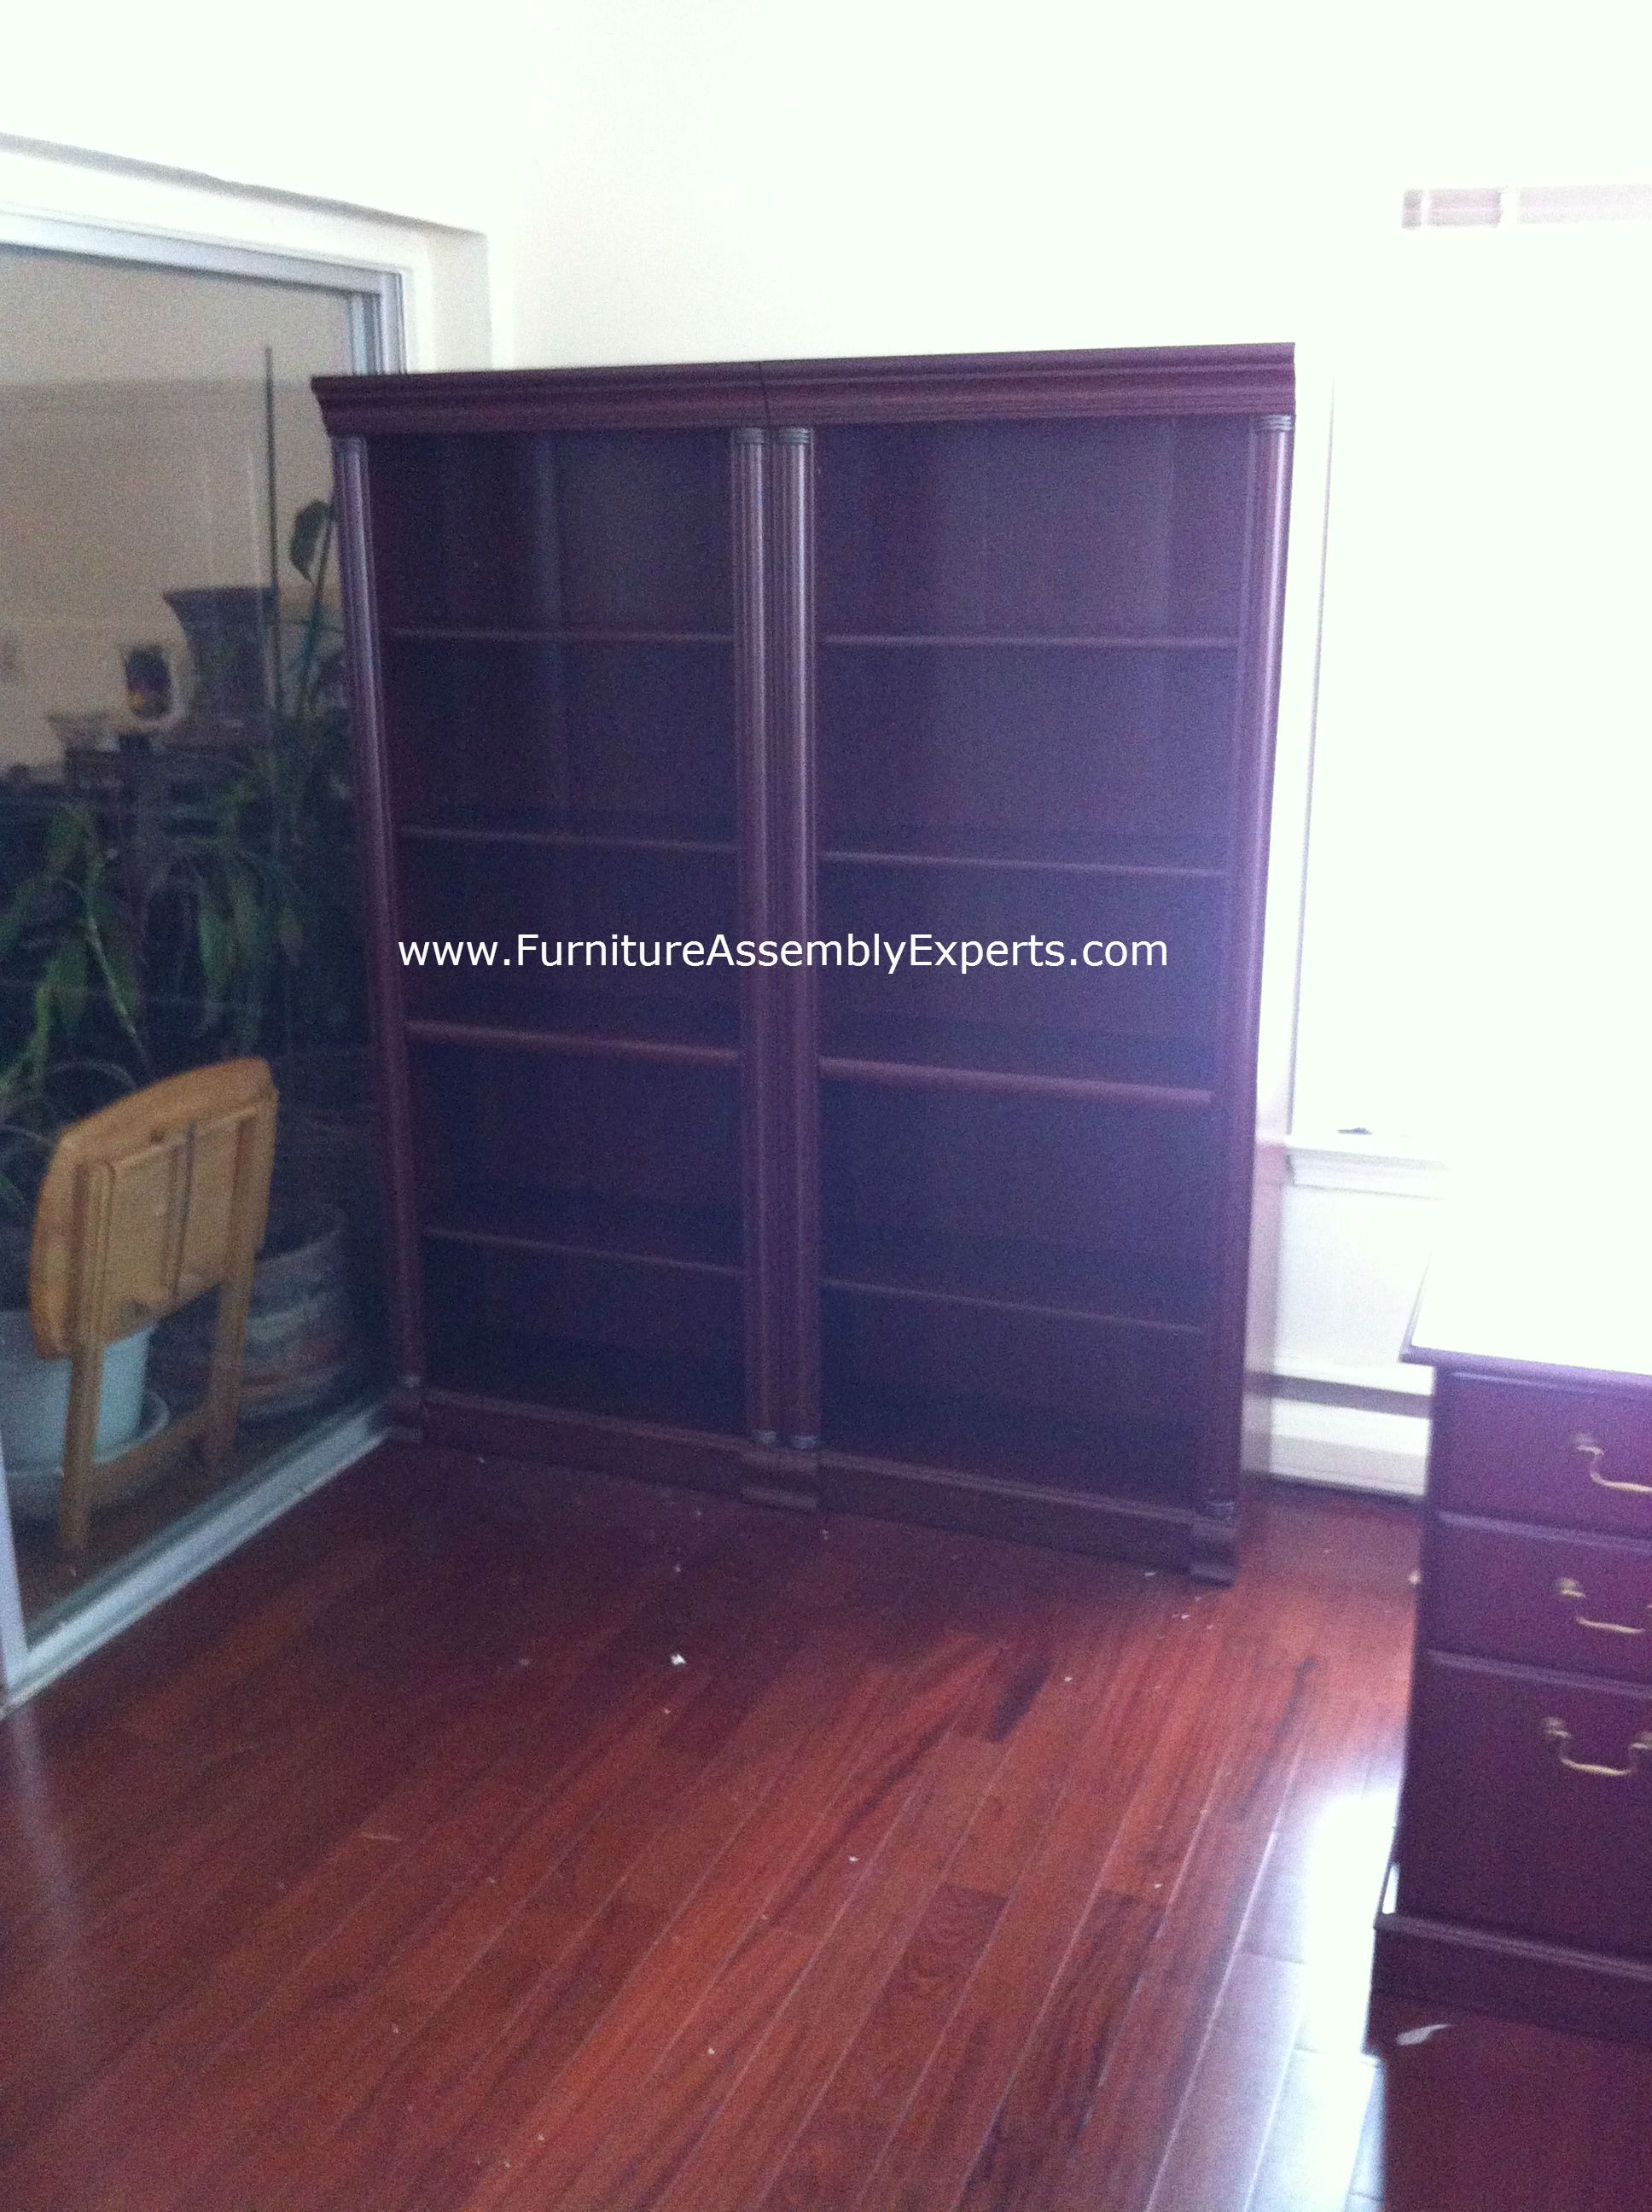 Office Depot Bookcase Assembled At Loyola University Campus